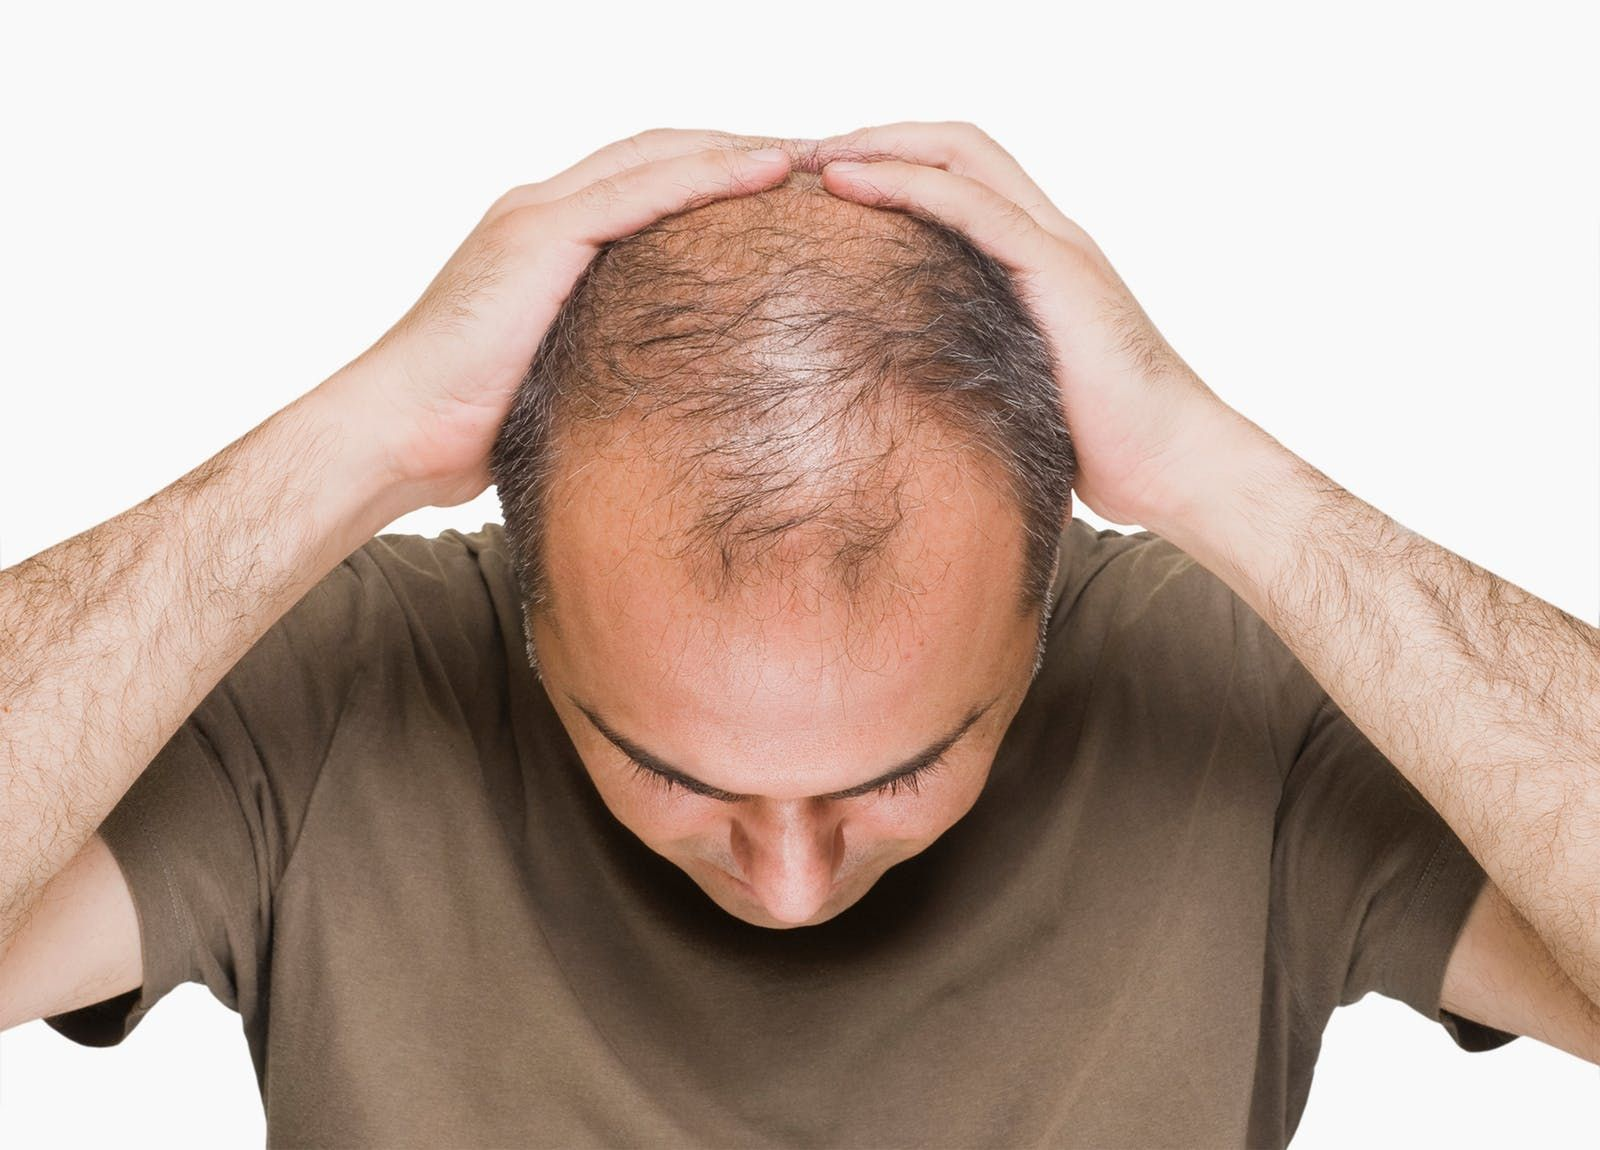 Male pattern baldness caused by elevated insulin diet